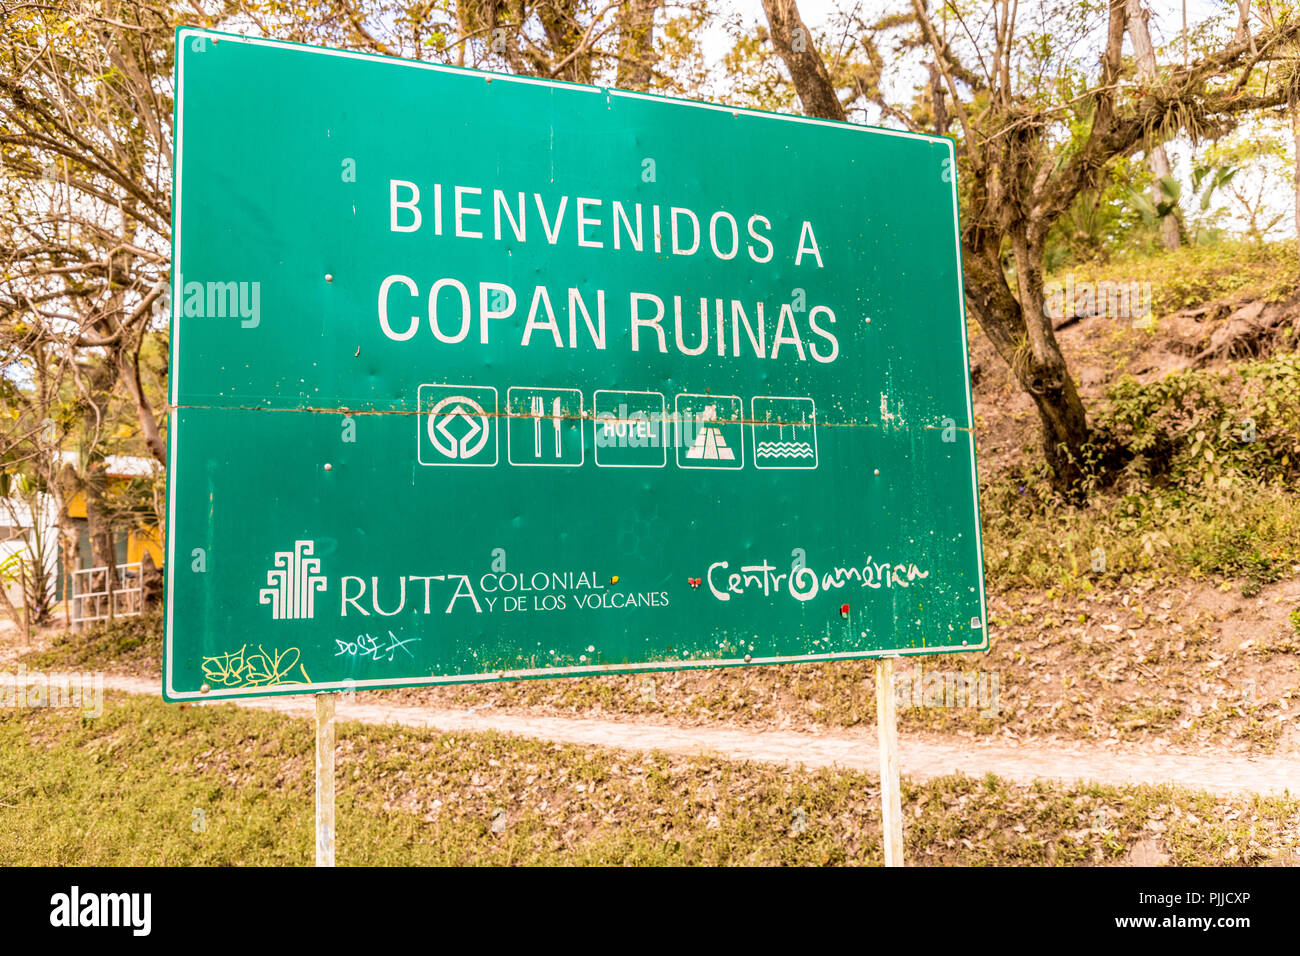 A typical view in Copan Ruins in Honduras - Stock Image